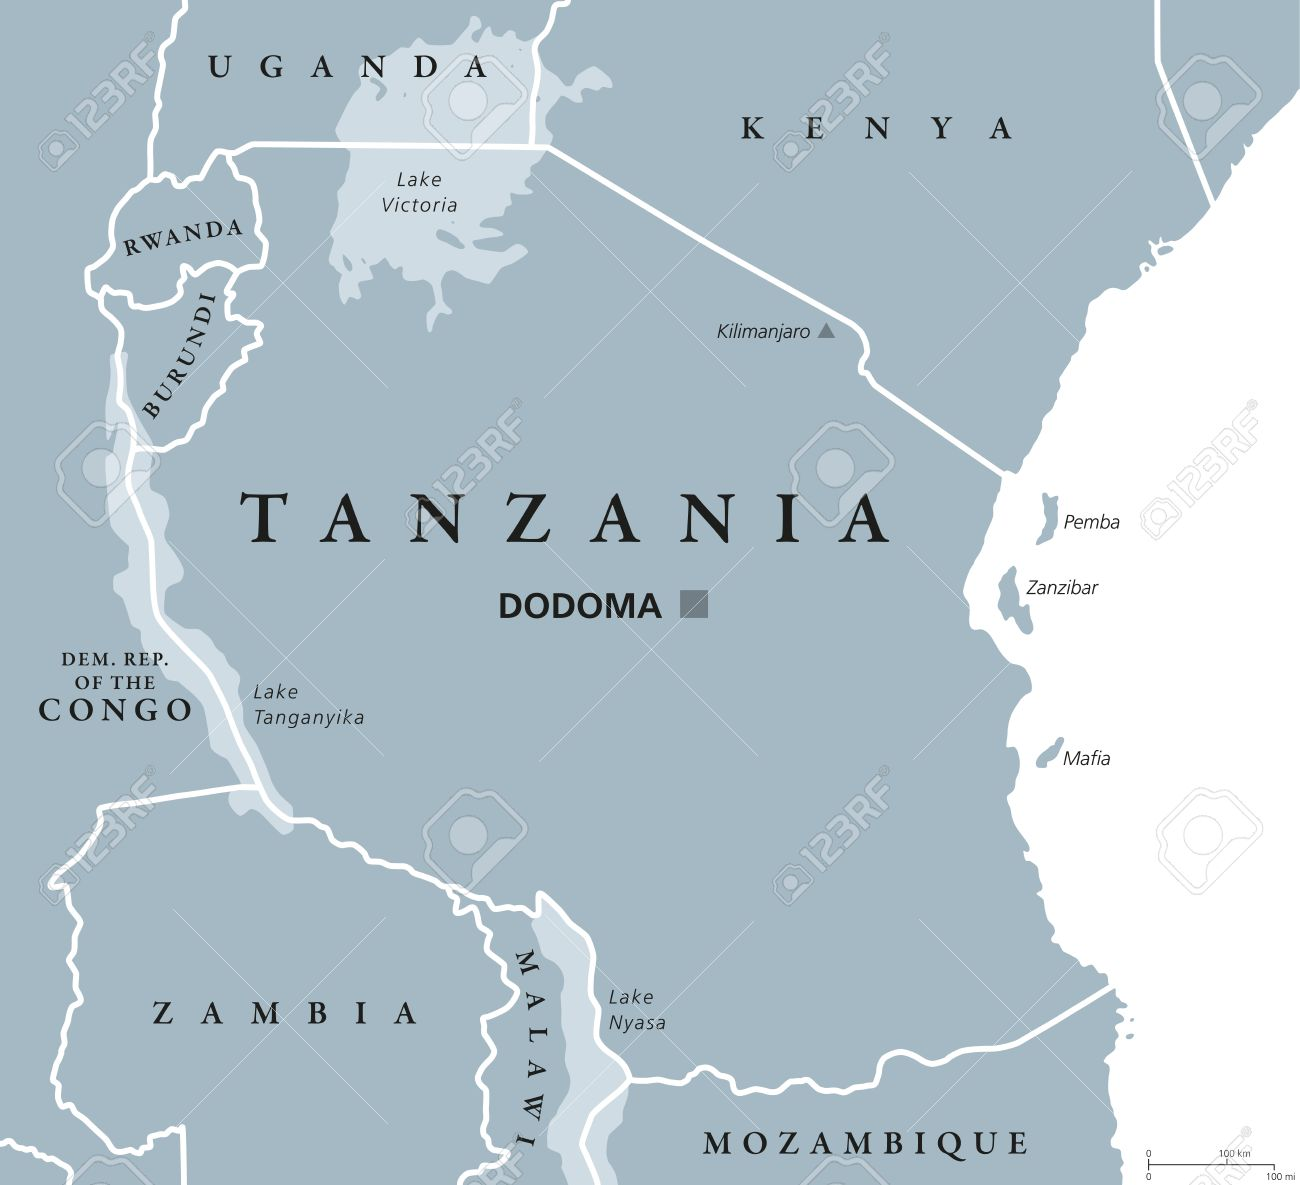 Tanzania Political Map With Capital Dodoma National Borders